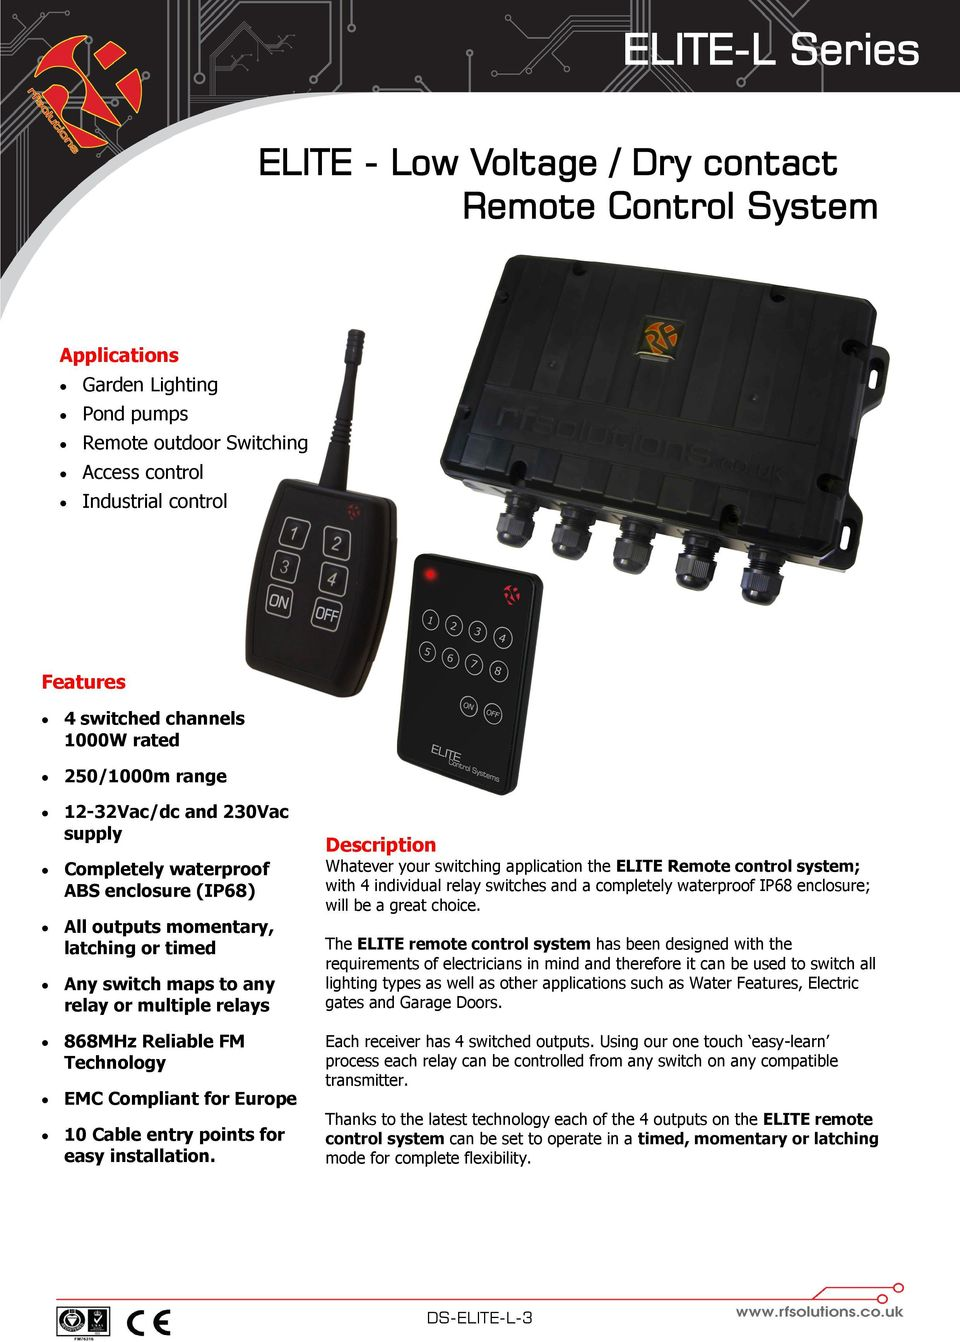 Elite L Series Low Voltage Dry Contact Remote Control Next The Four Relay Outputs From Inbuilt Relays Reliable Fm Technology Emc Compliant For Europe 10 Cable Entry Points Easy Installation